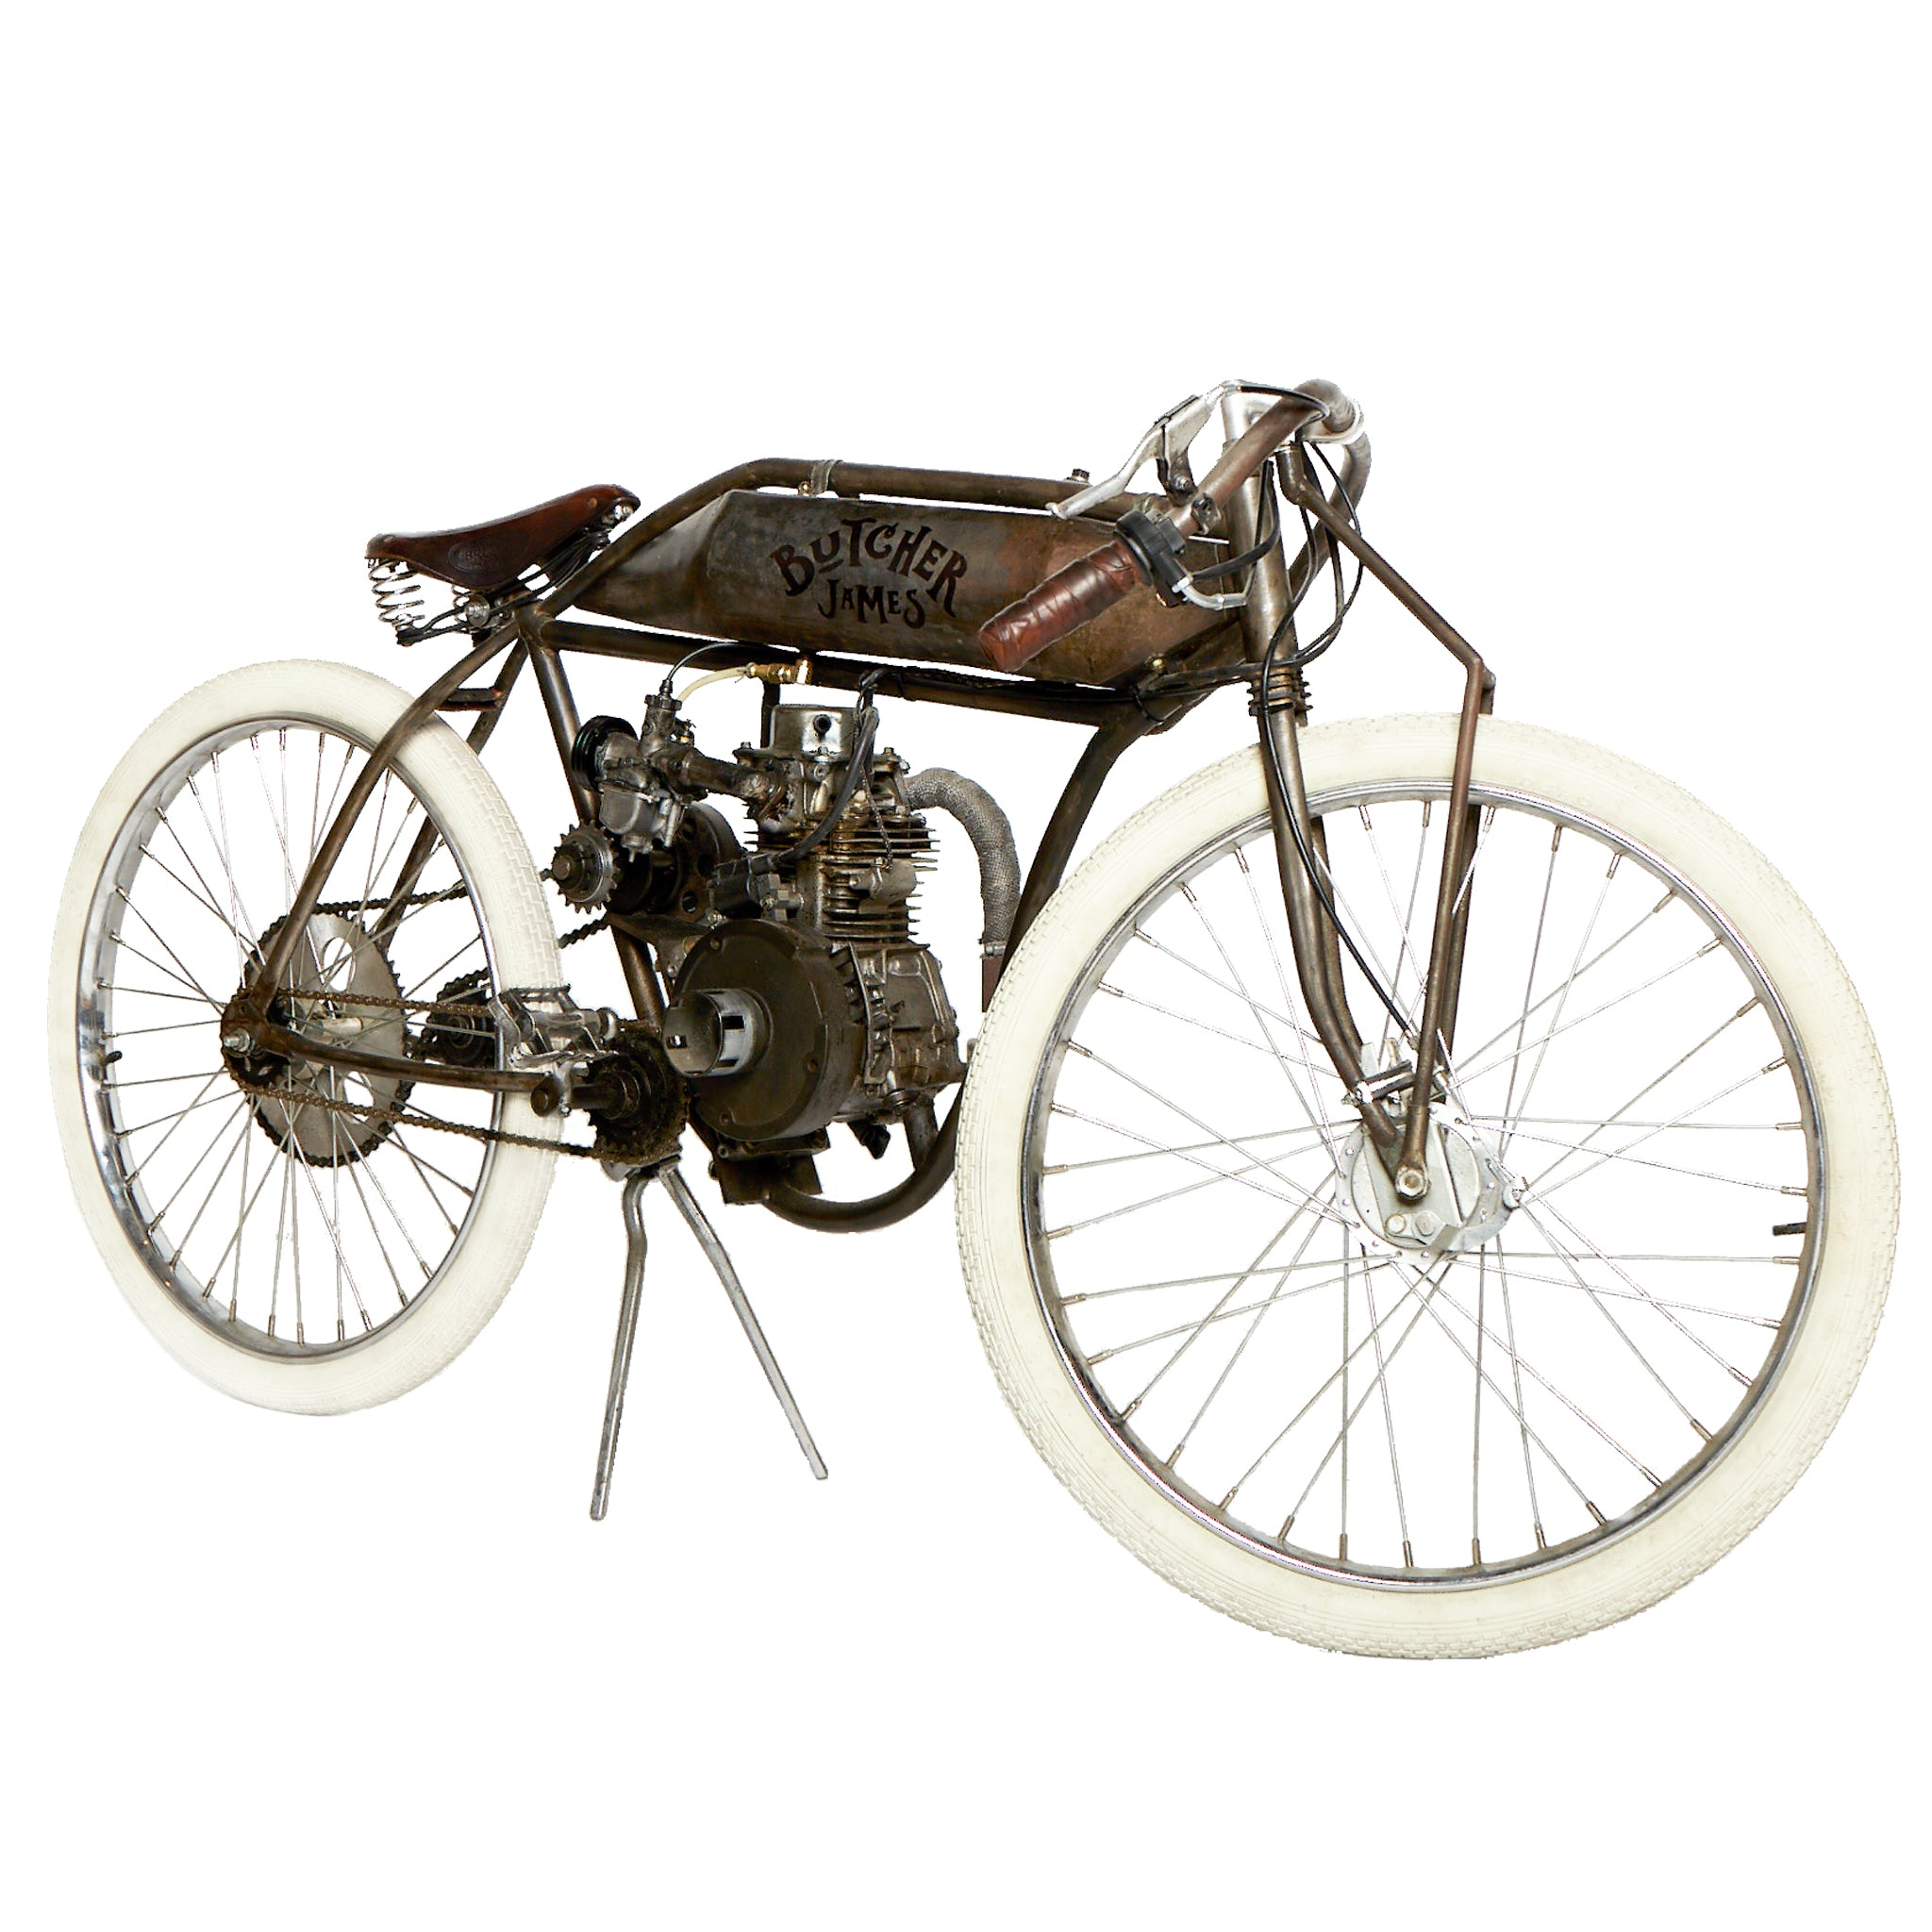 KRUSHER MOTORCYCLE